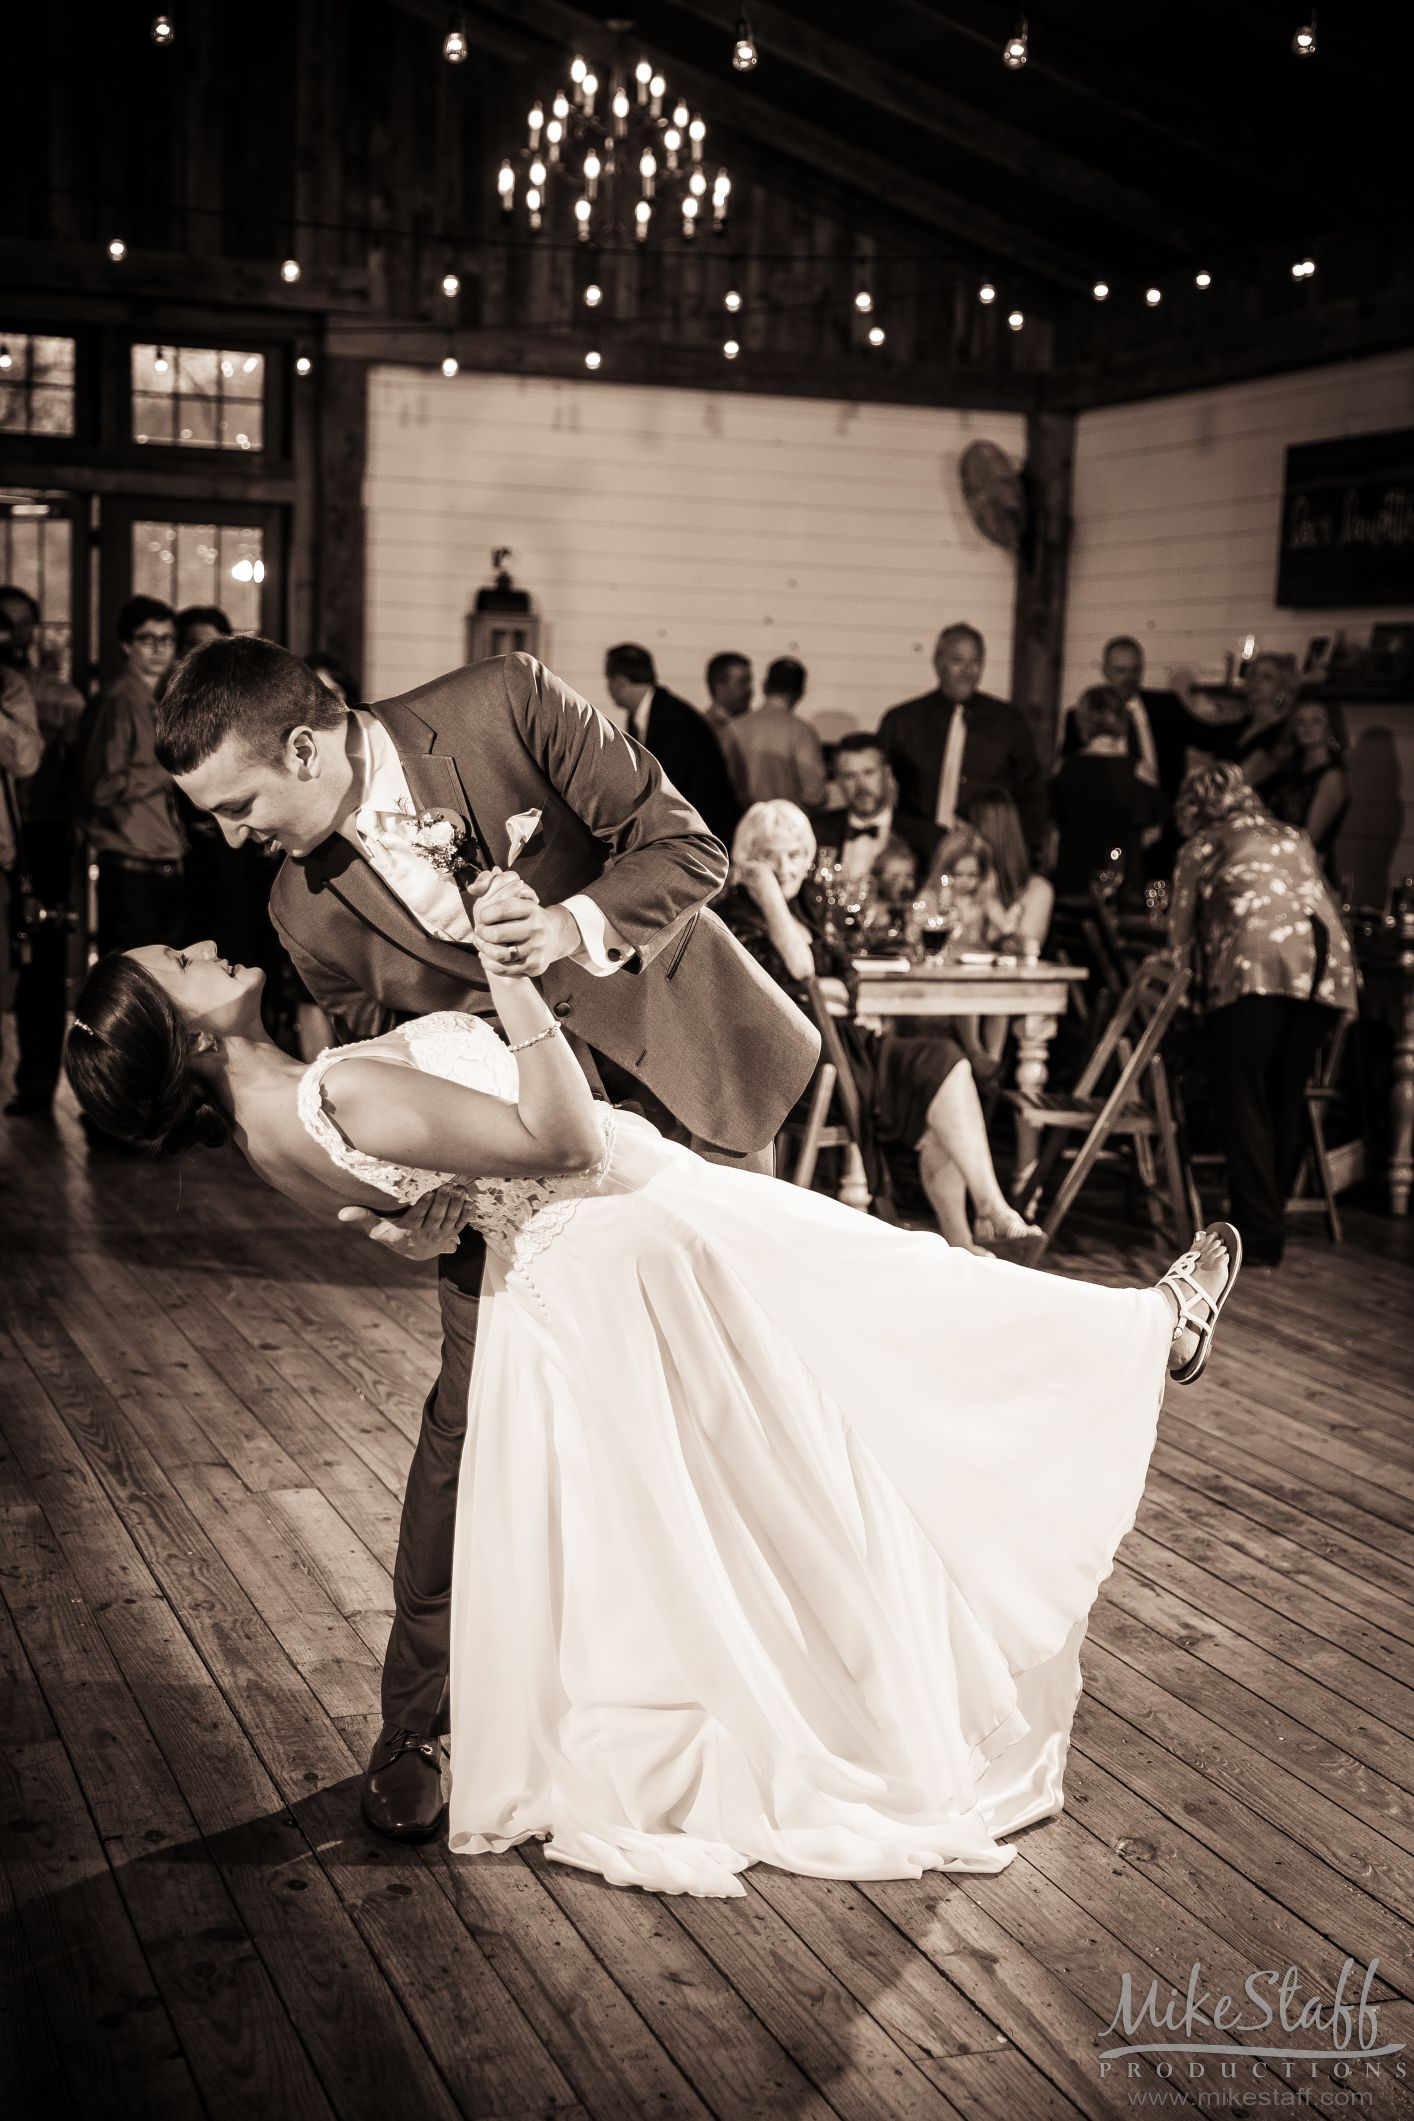 Have you read how to hire a GREAT DJ? Wedding music